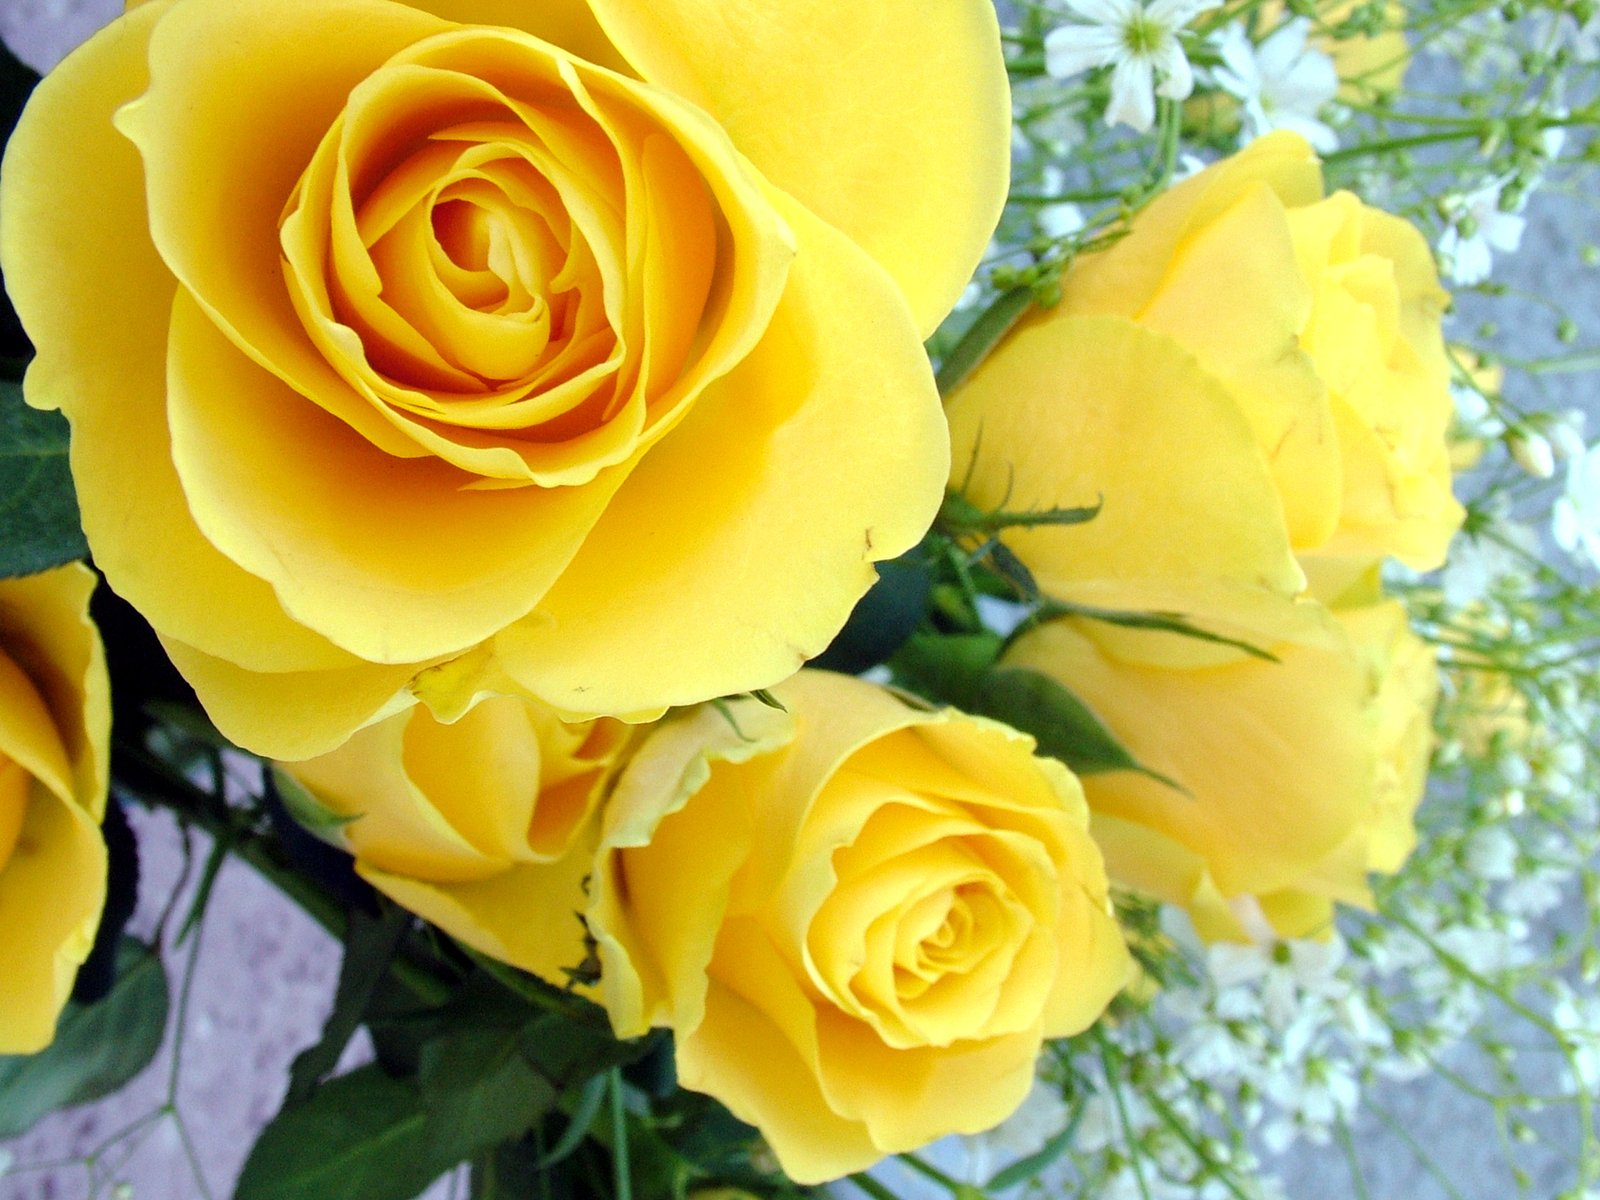 Free Yellow Rose Images Pictures And Royalty Free Stock Photos